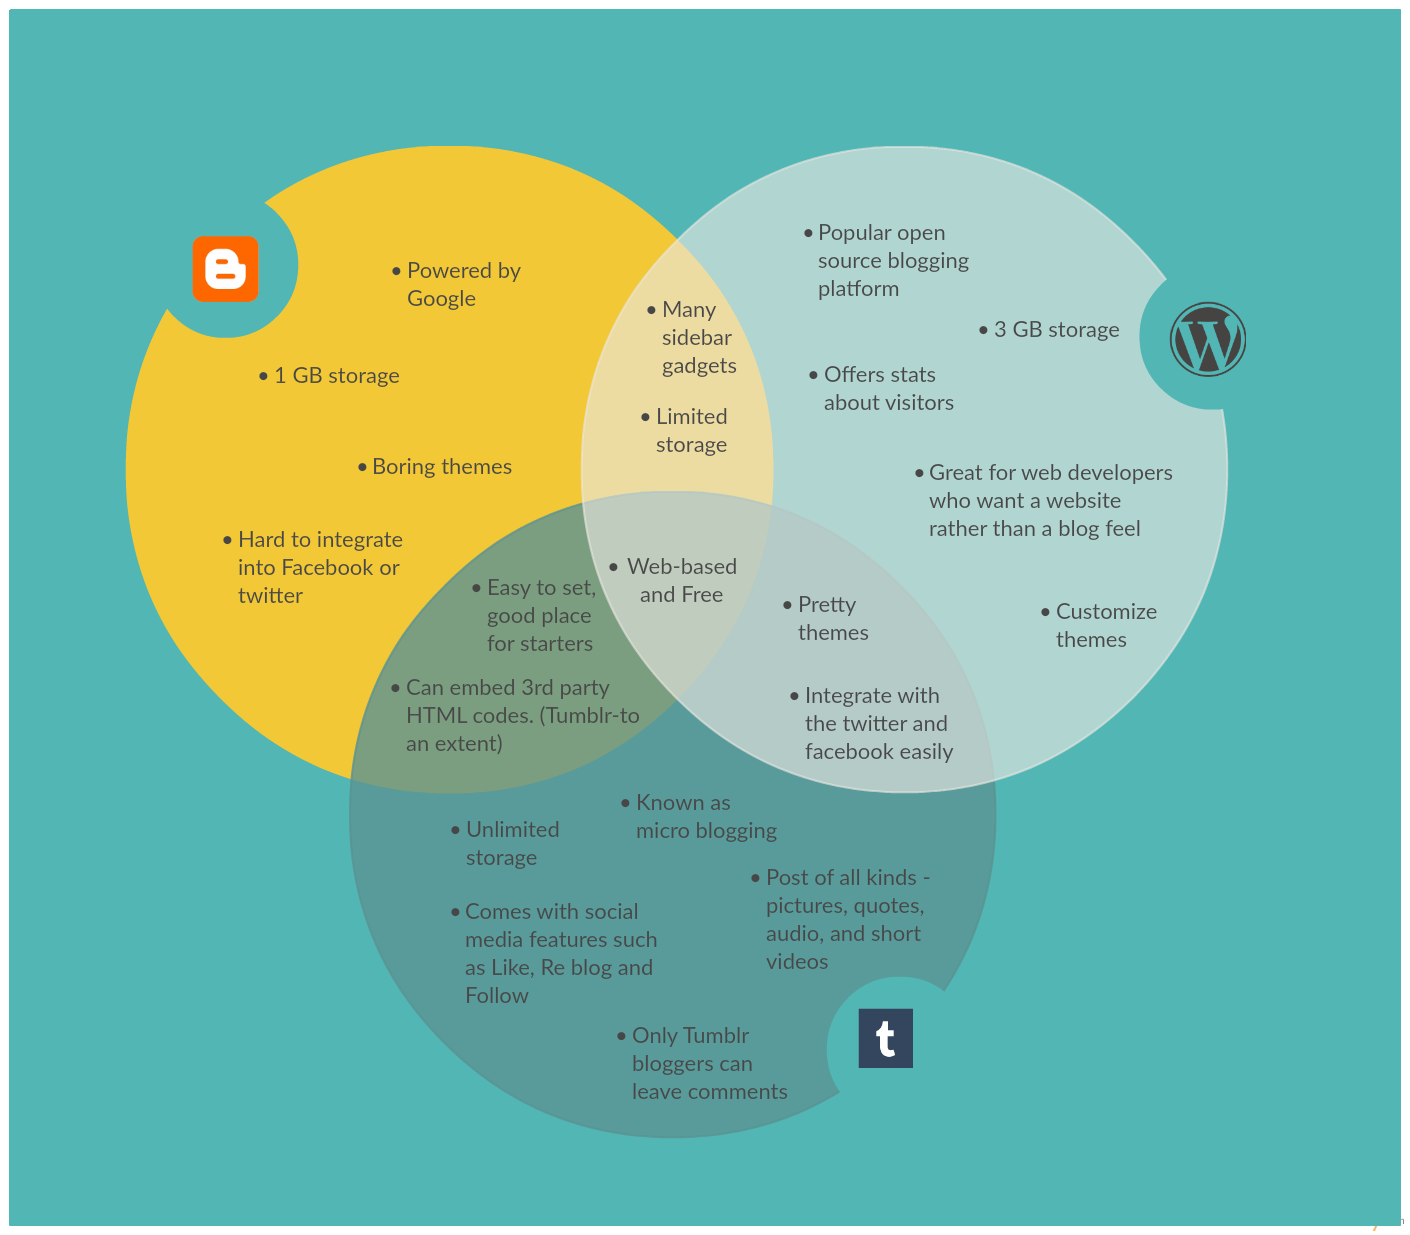 Venn diagram templates editable online or download for free venn diagram template on the different blogging platforms pooptronica Images